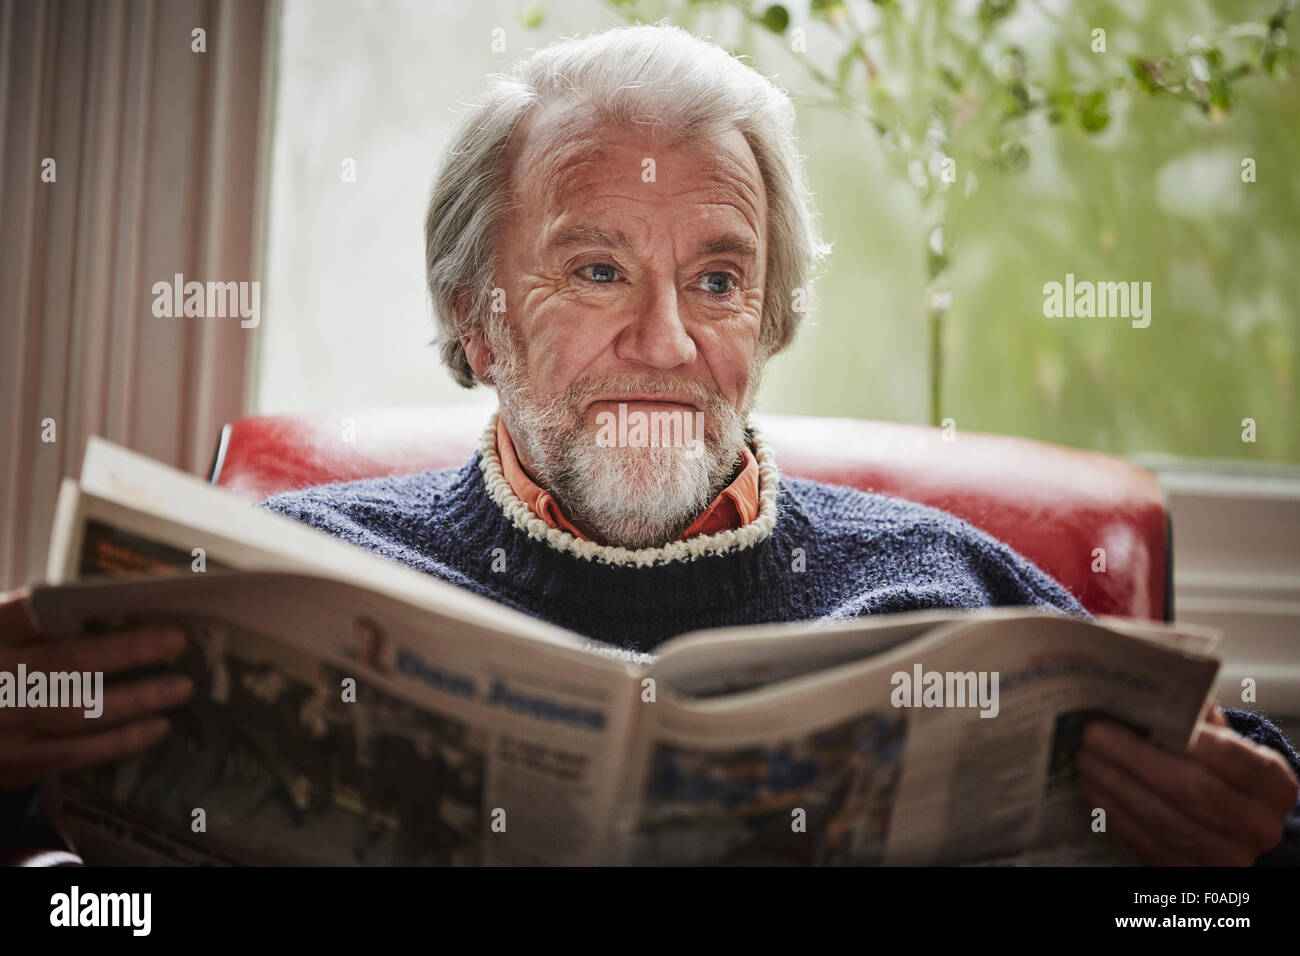 Senior man reading newspaper - Stock Image